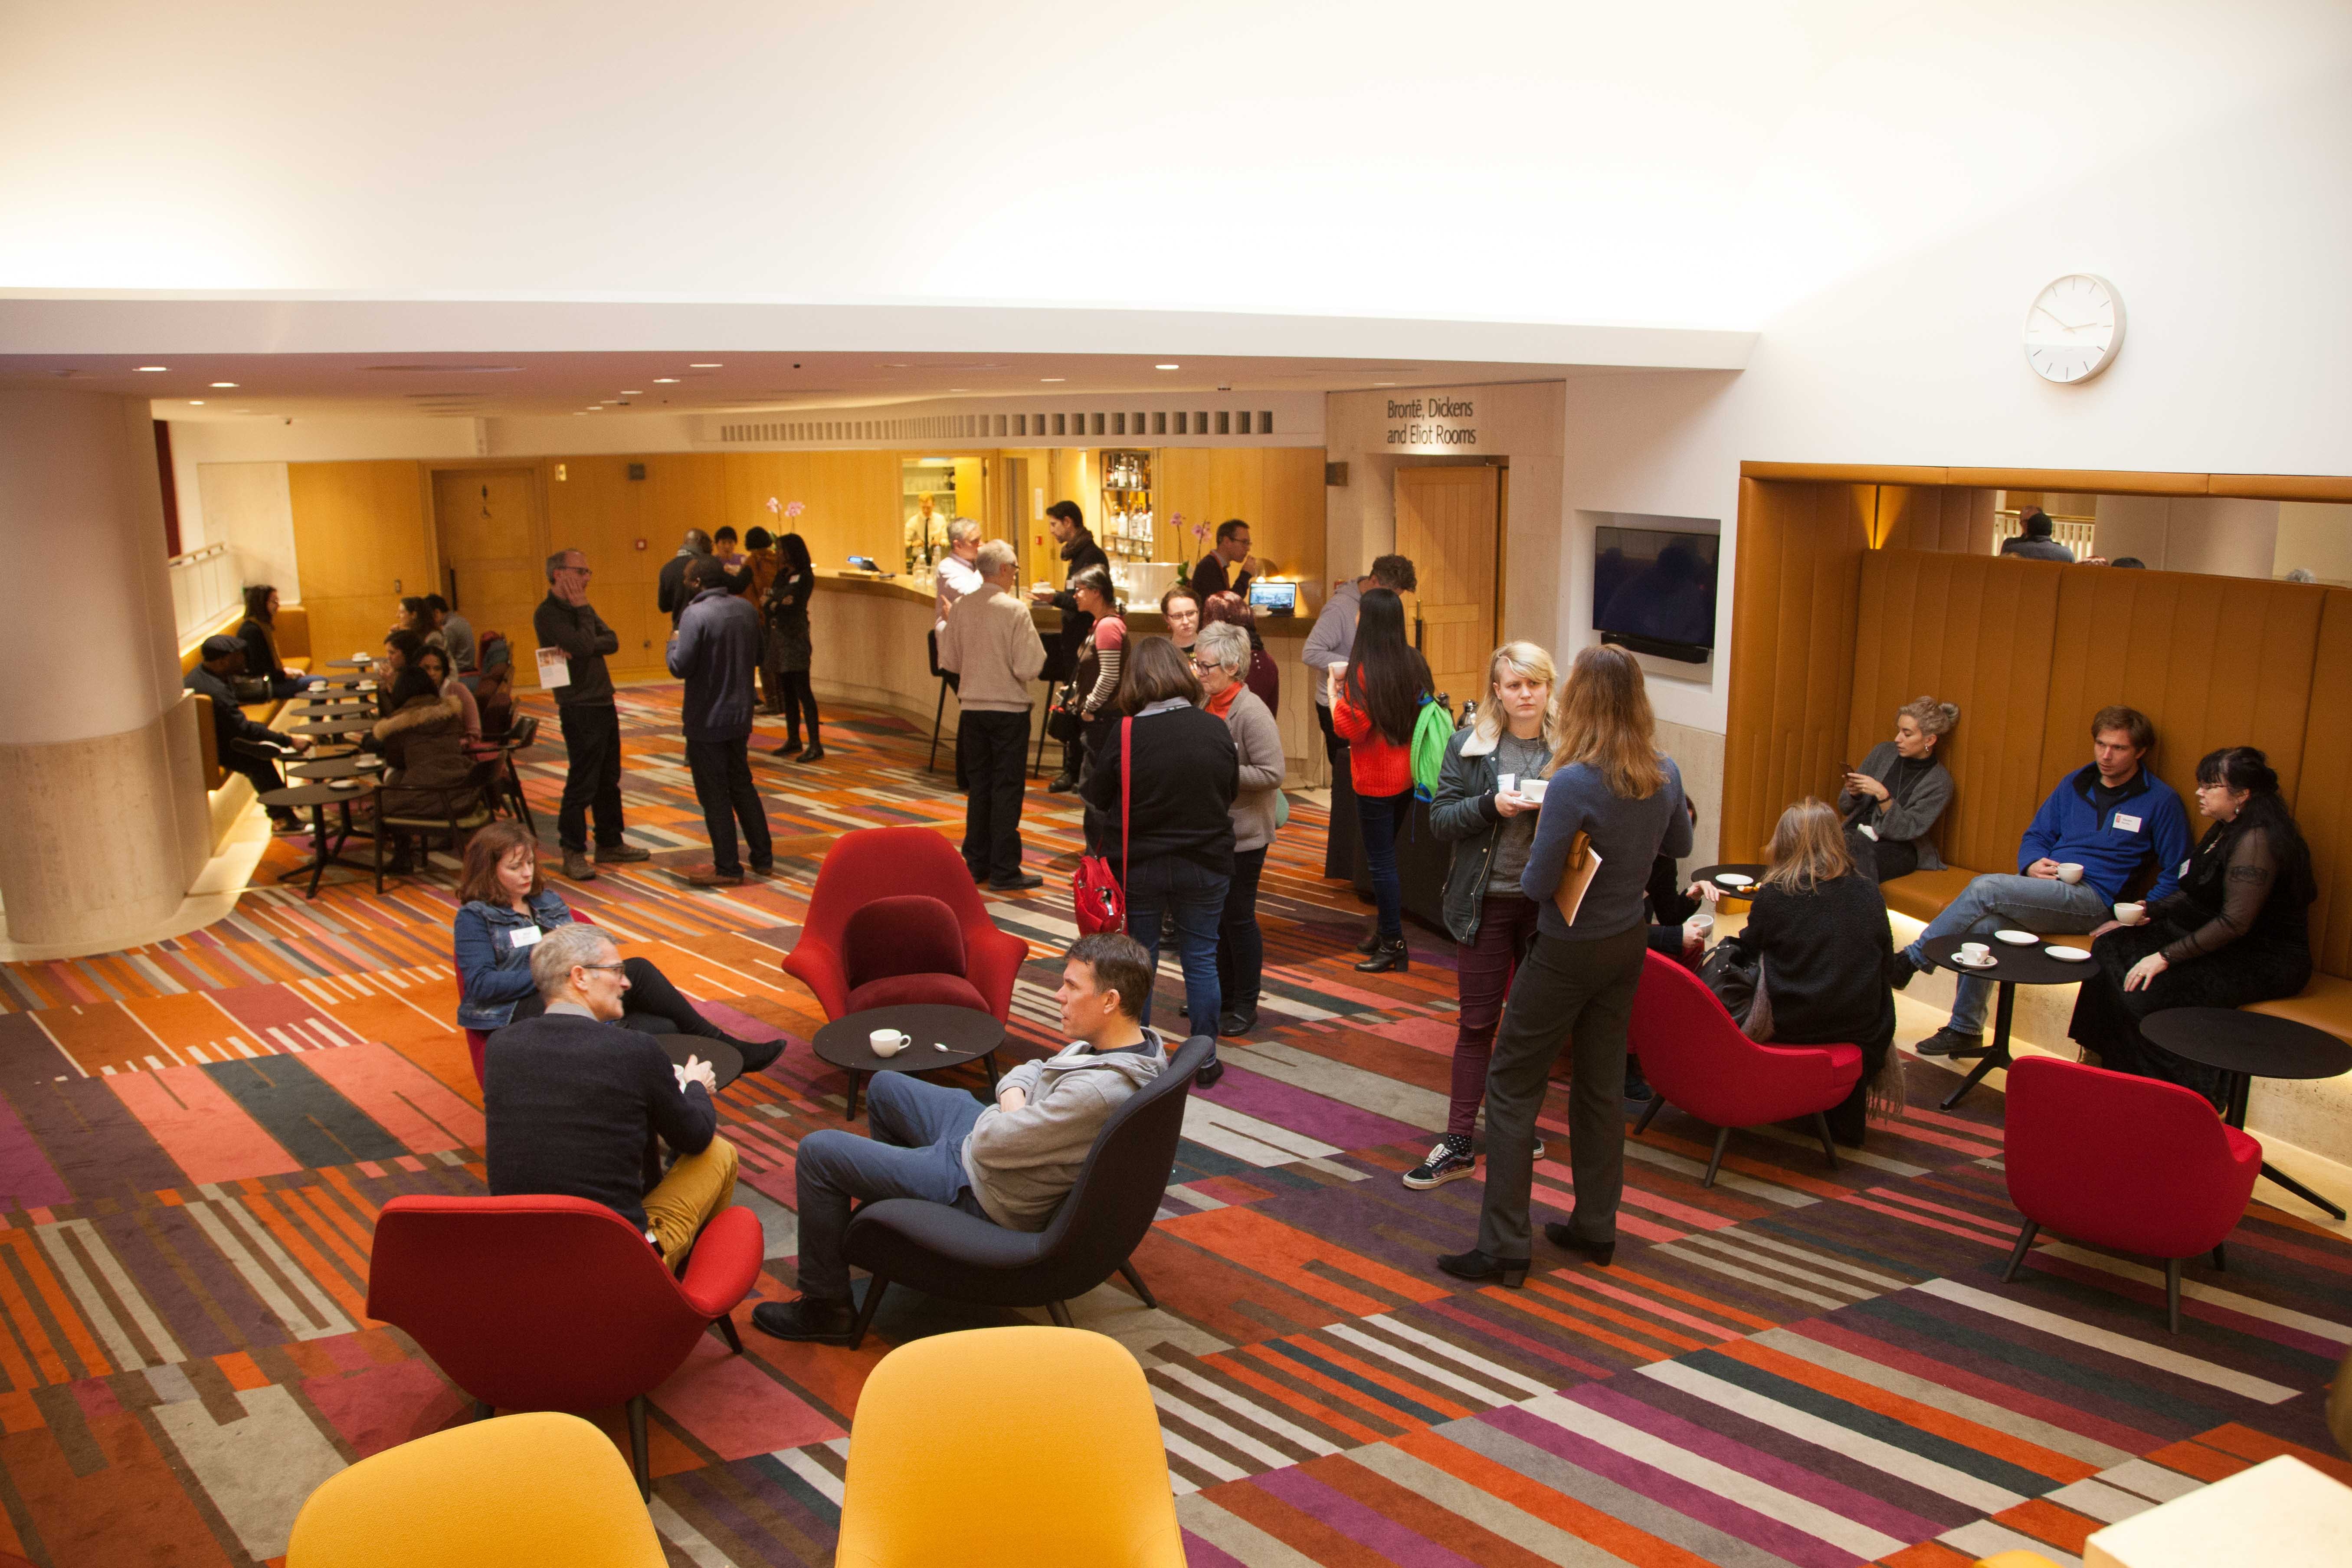 research networking British Library